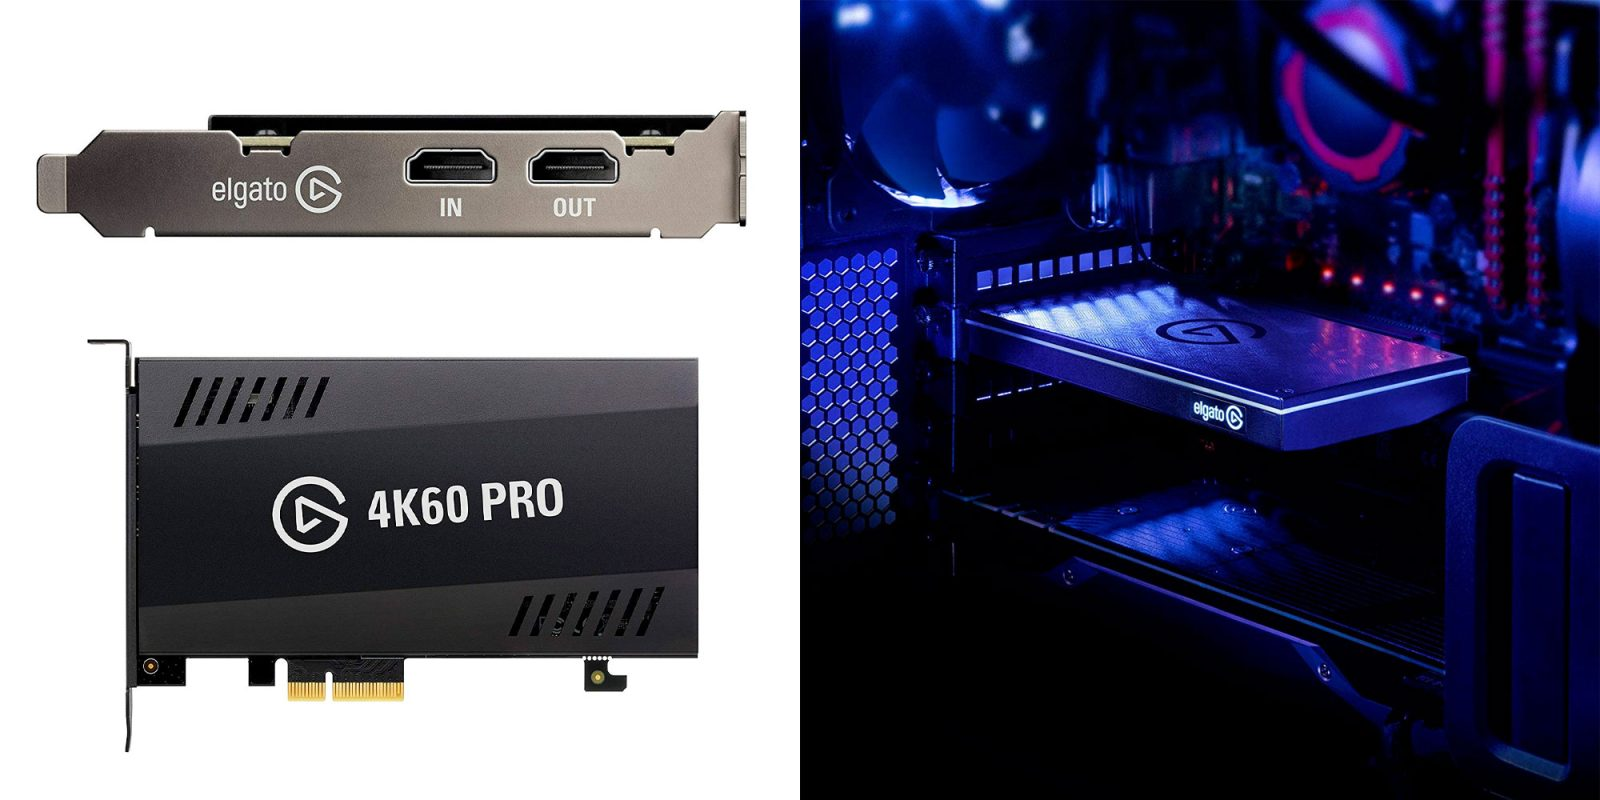 Learn to stream with Elgato's Game Capture 4K60 Pro at $250 (Reg